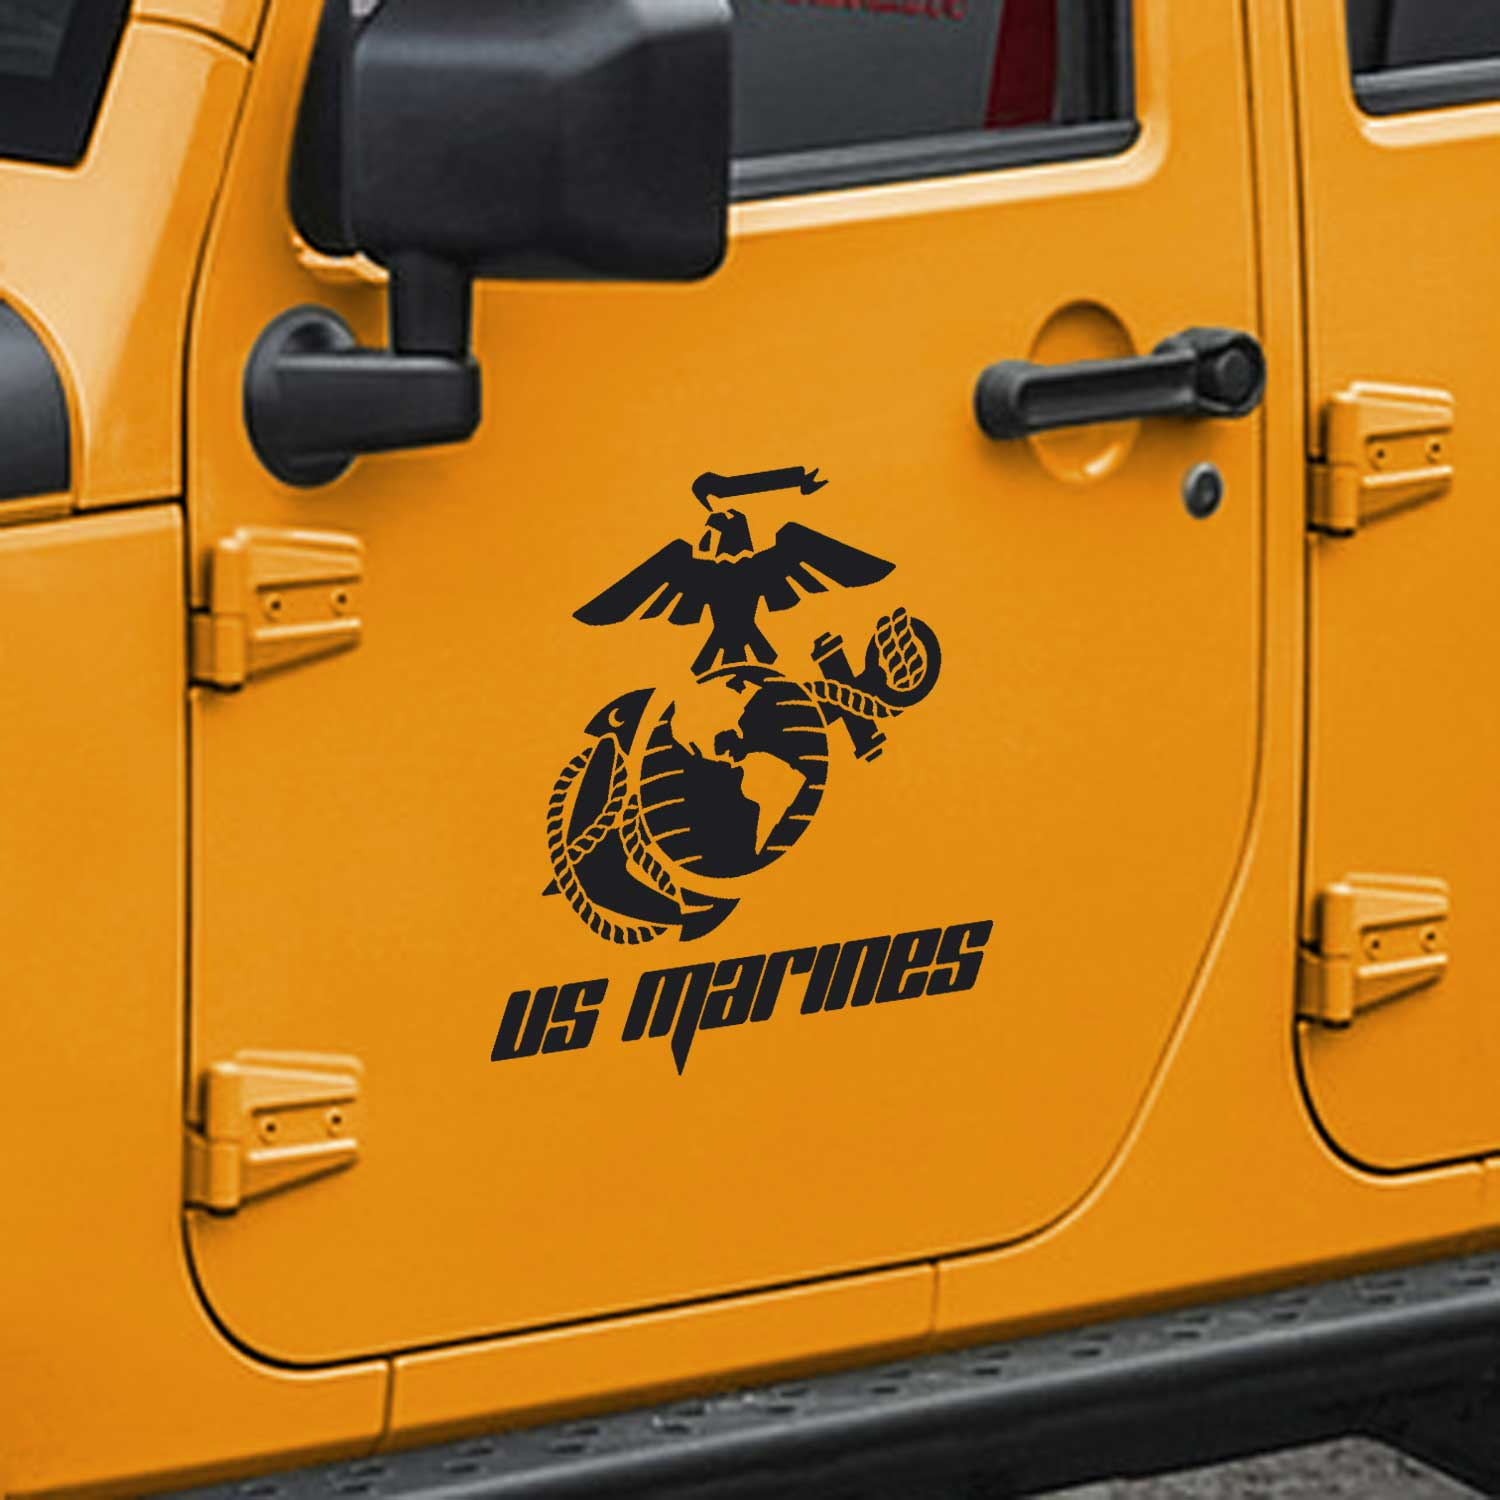 Jeep Wrangler USMC Marine Corps Eagle Globe & Anchor Door Decals